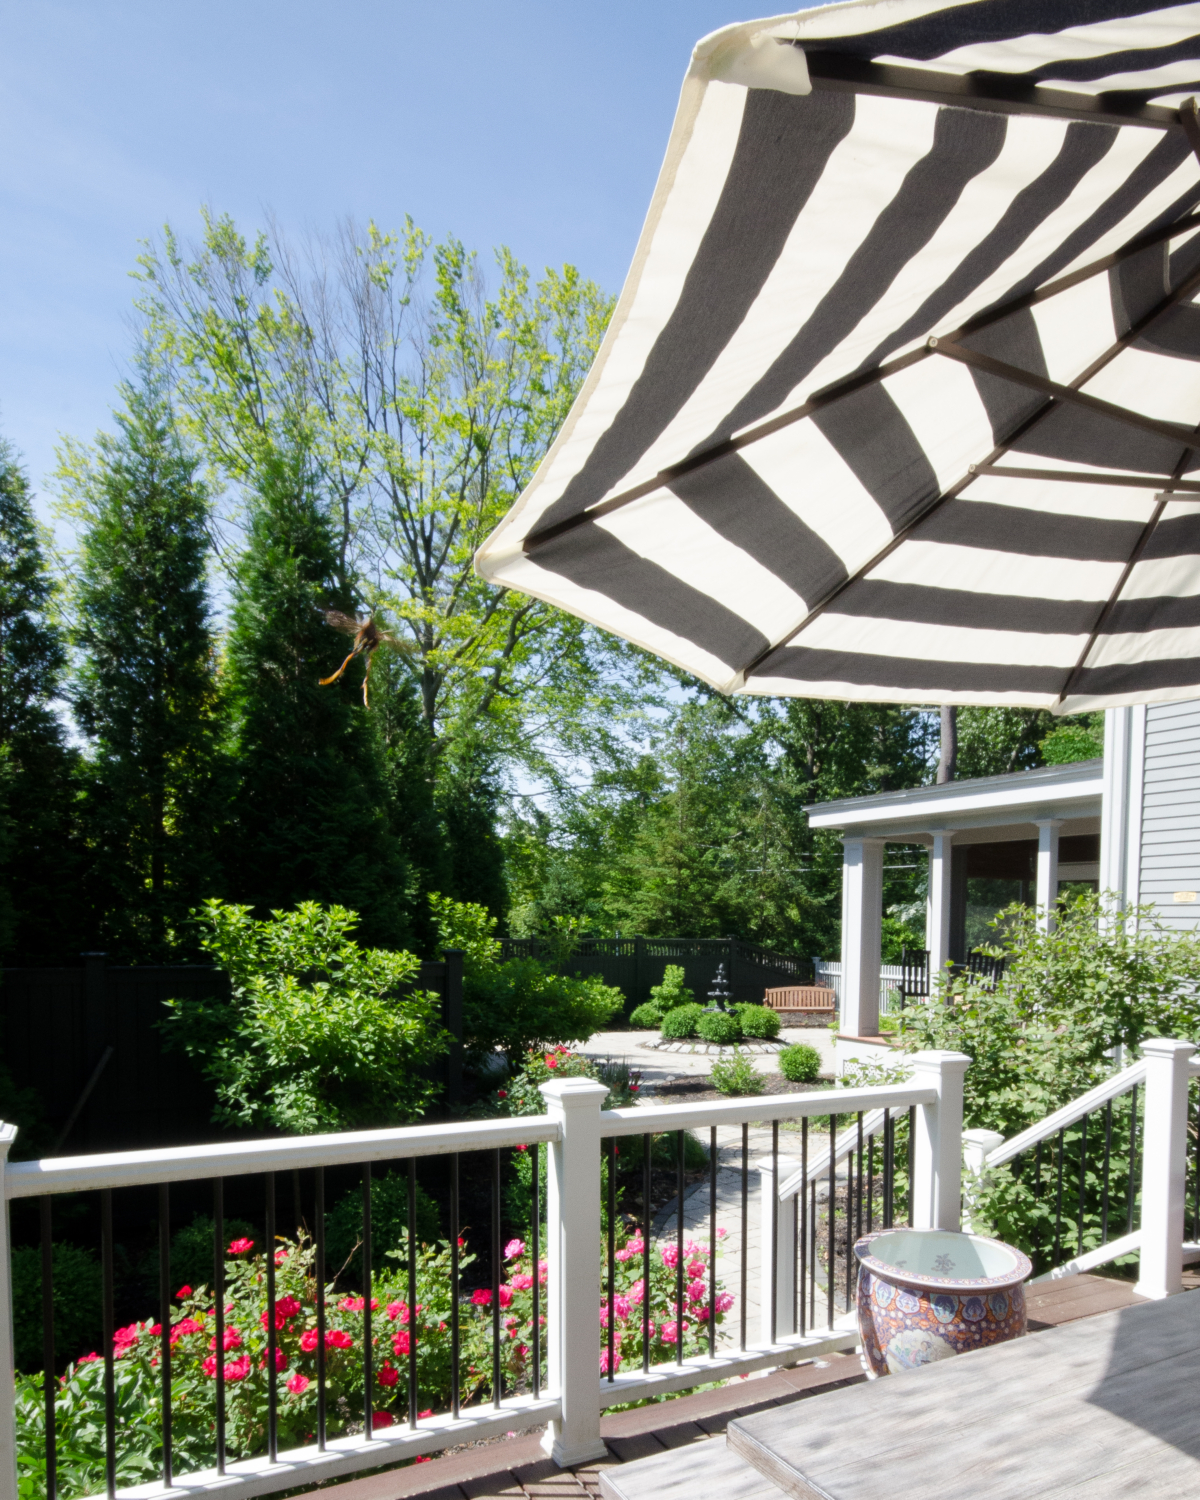 Gorgeous deck and patio spaces with lush plantings, dining space, lounge chairs, and a centerpiece fountain.